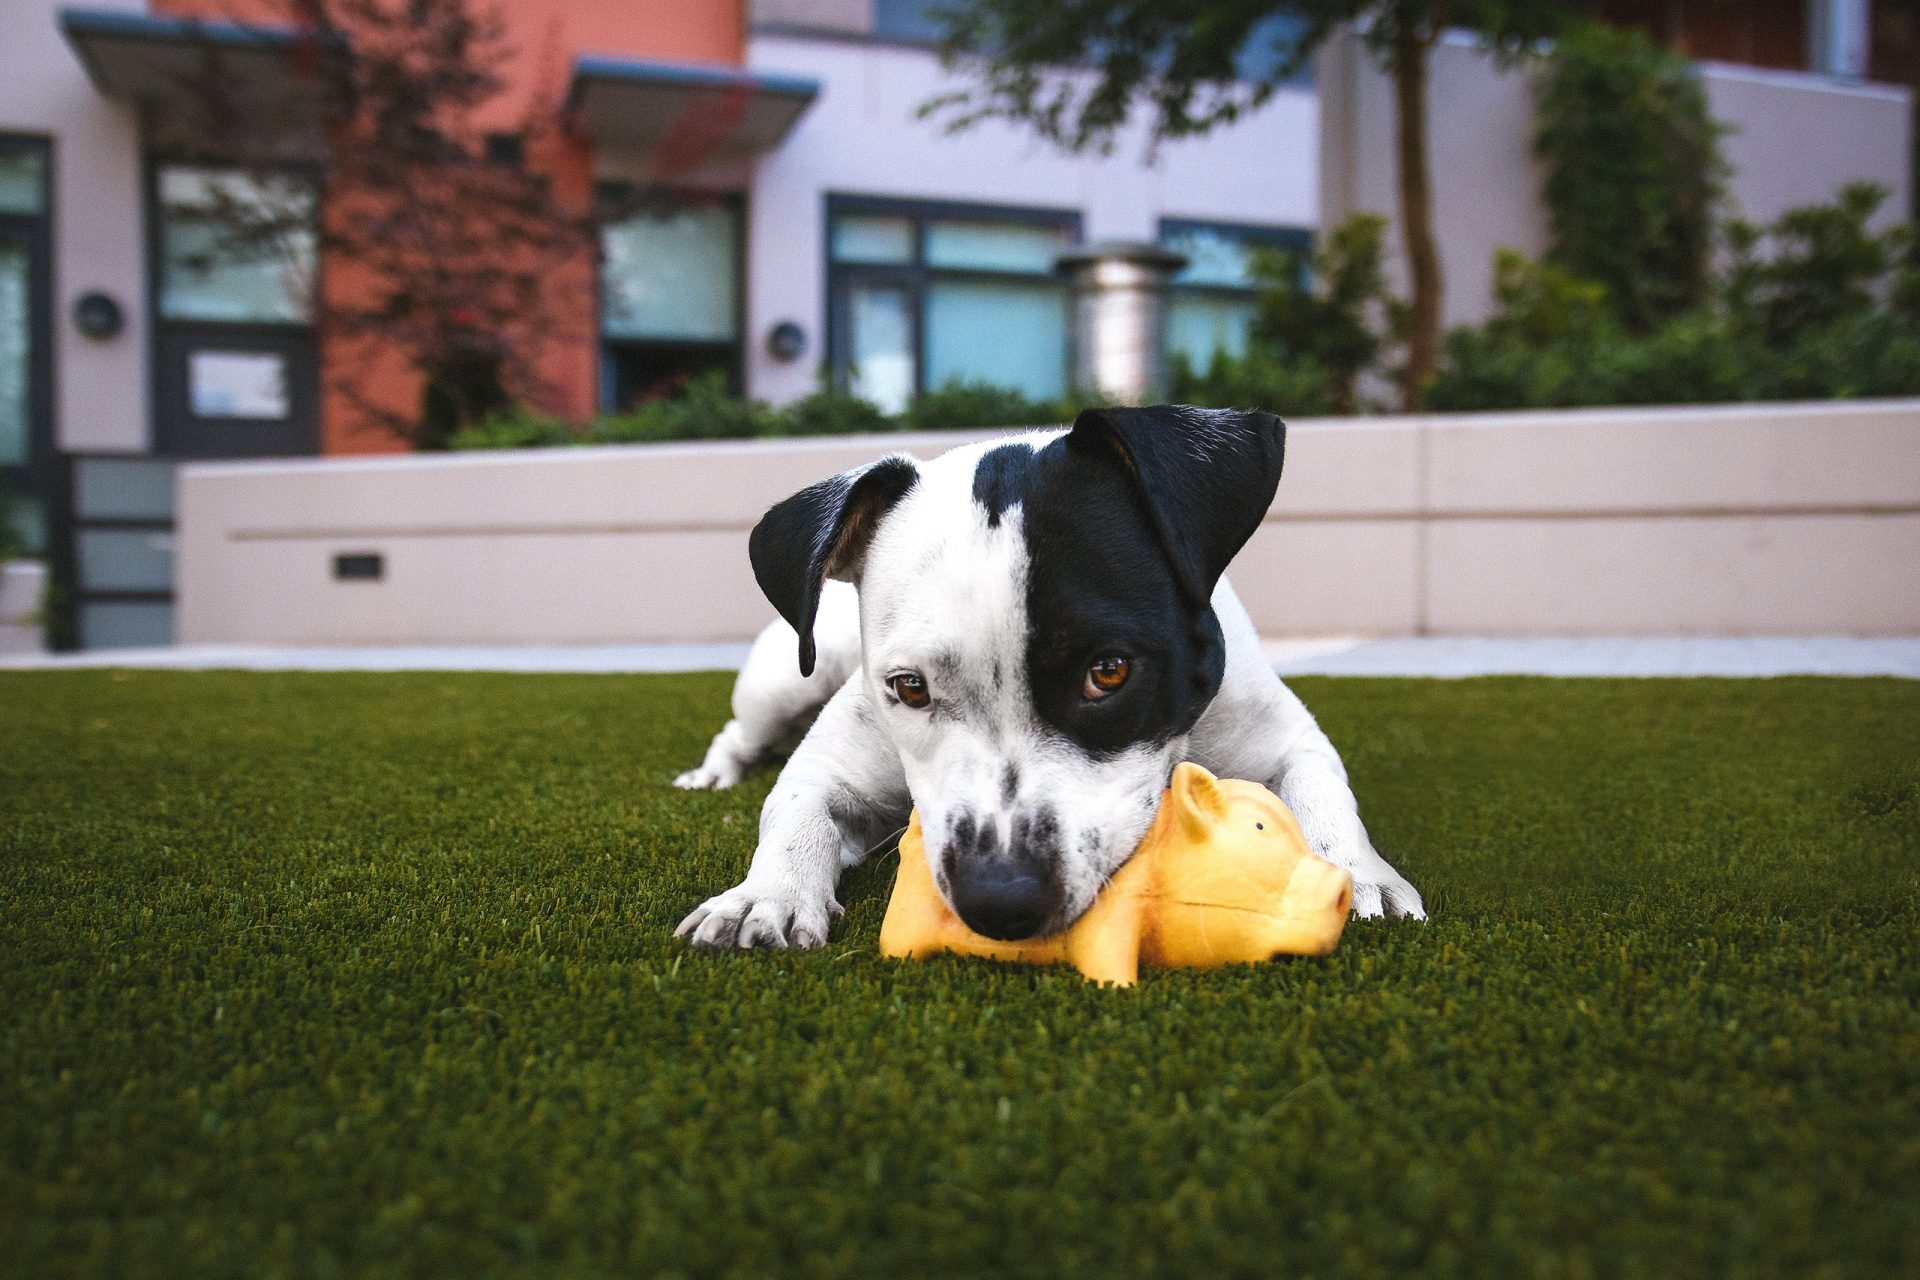 Black and white puppy eating a yellow toy in a garden